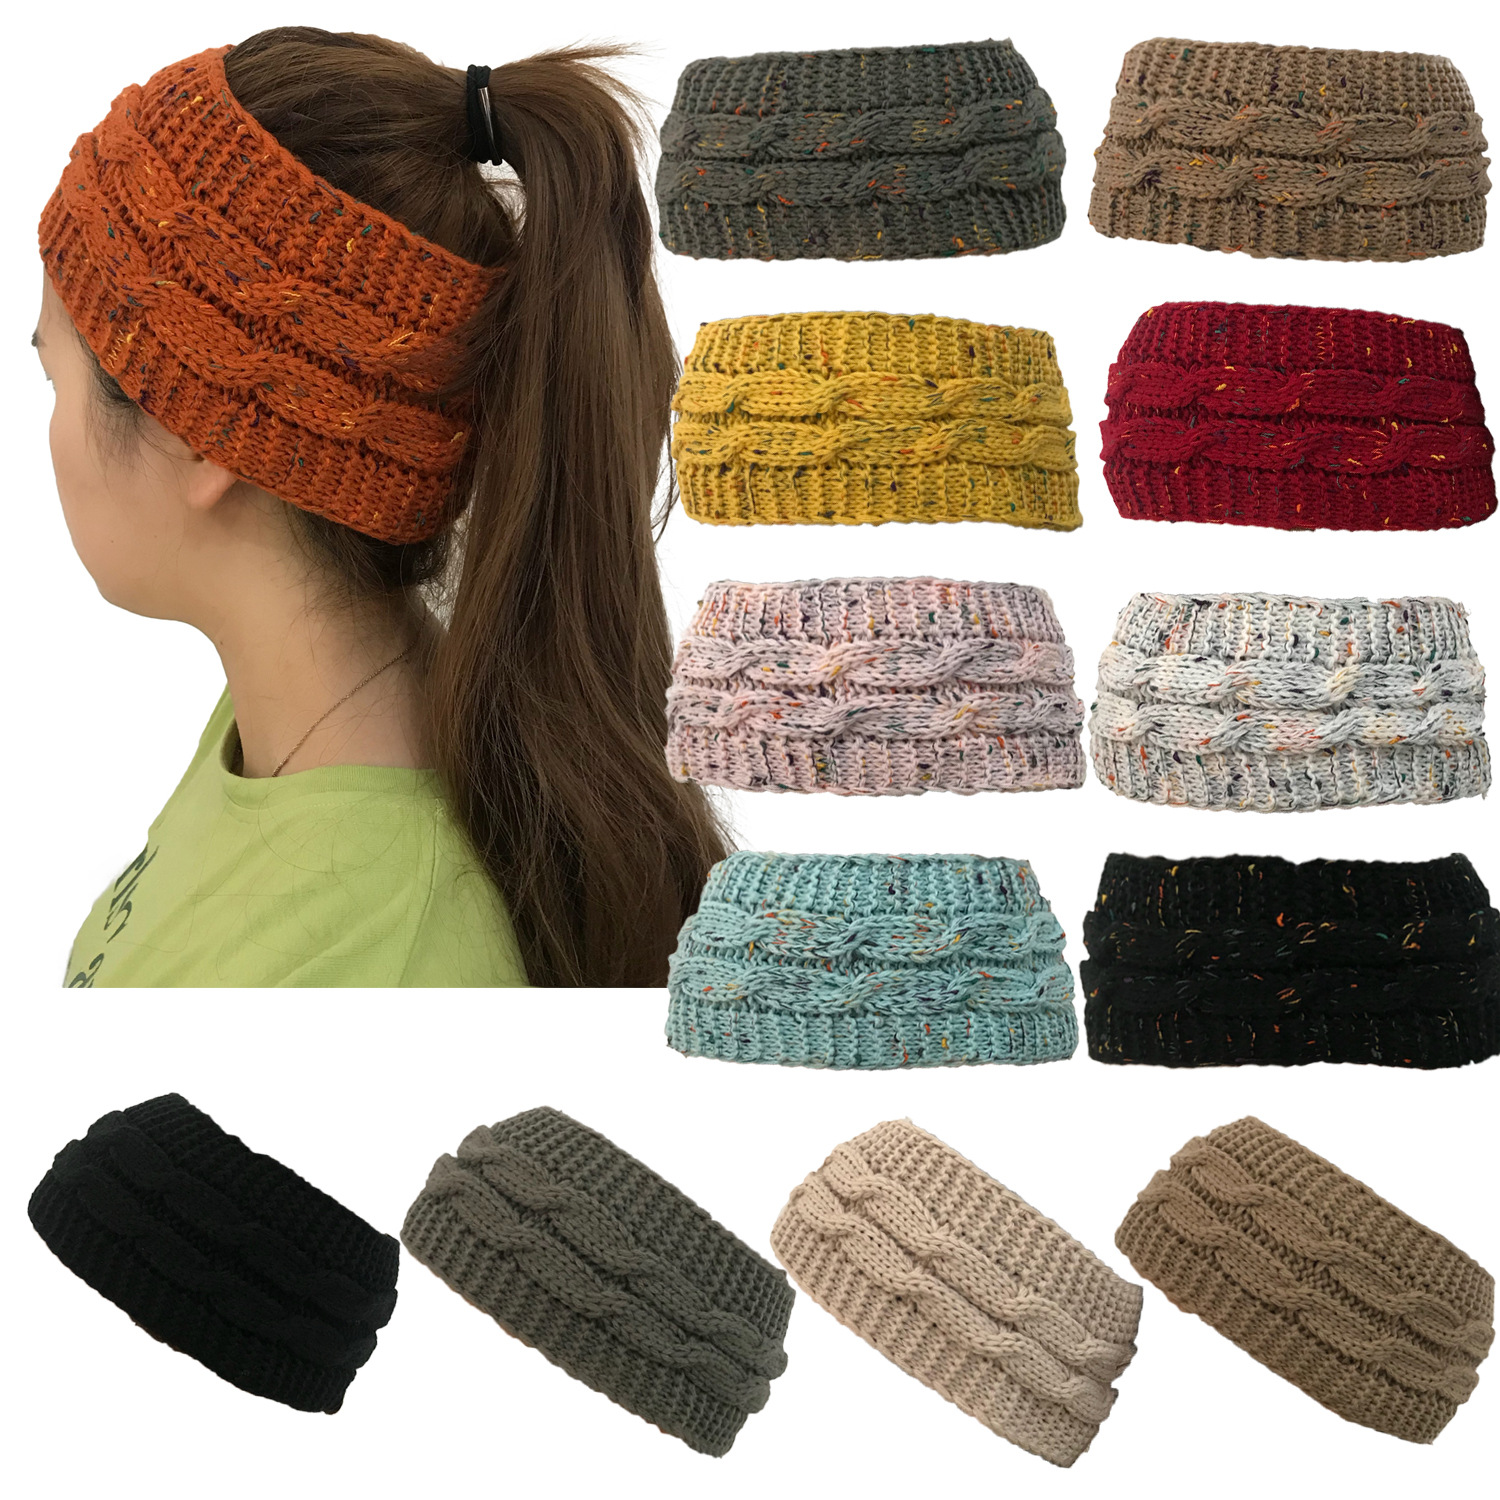 Ponytail Beanies Women Warm Winter Hat For Women Beanie Knitted Head Wear  Bun Hats Girl Skull Cap Bonnet Headwear czapki zimowe 632a5385f